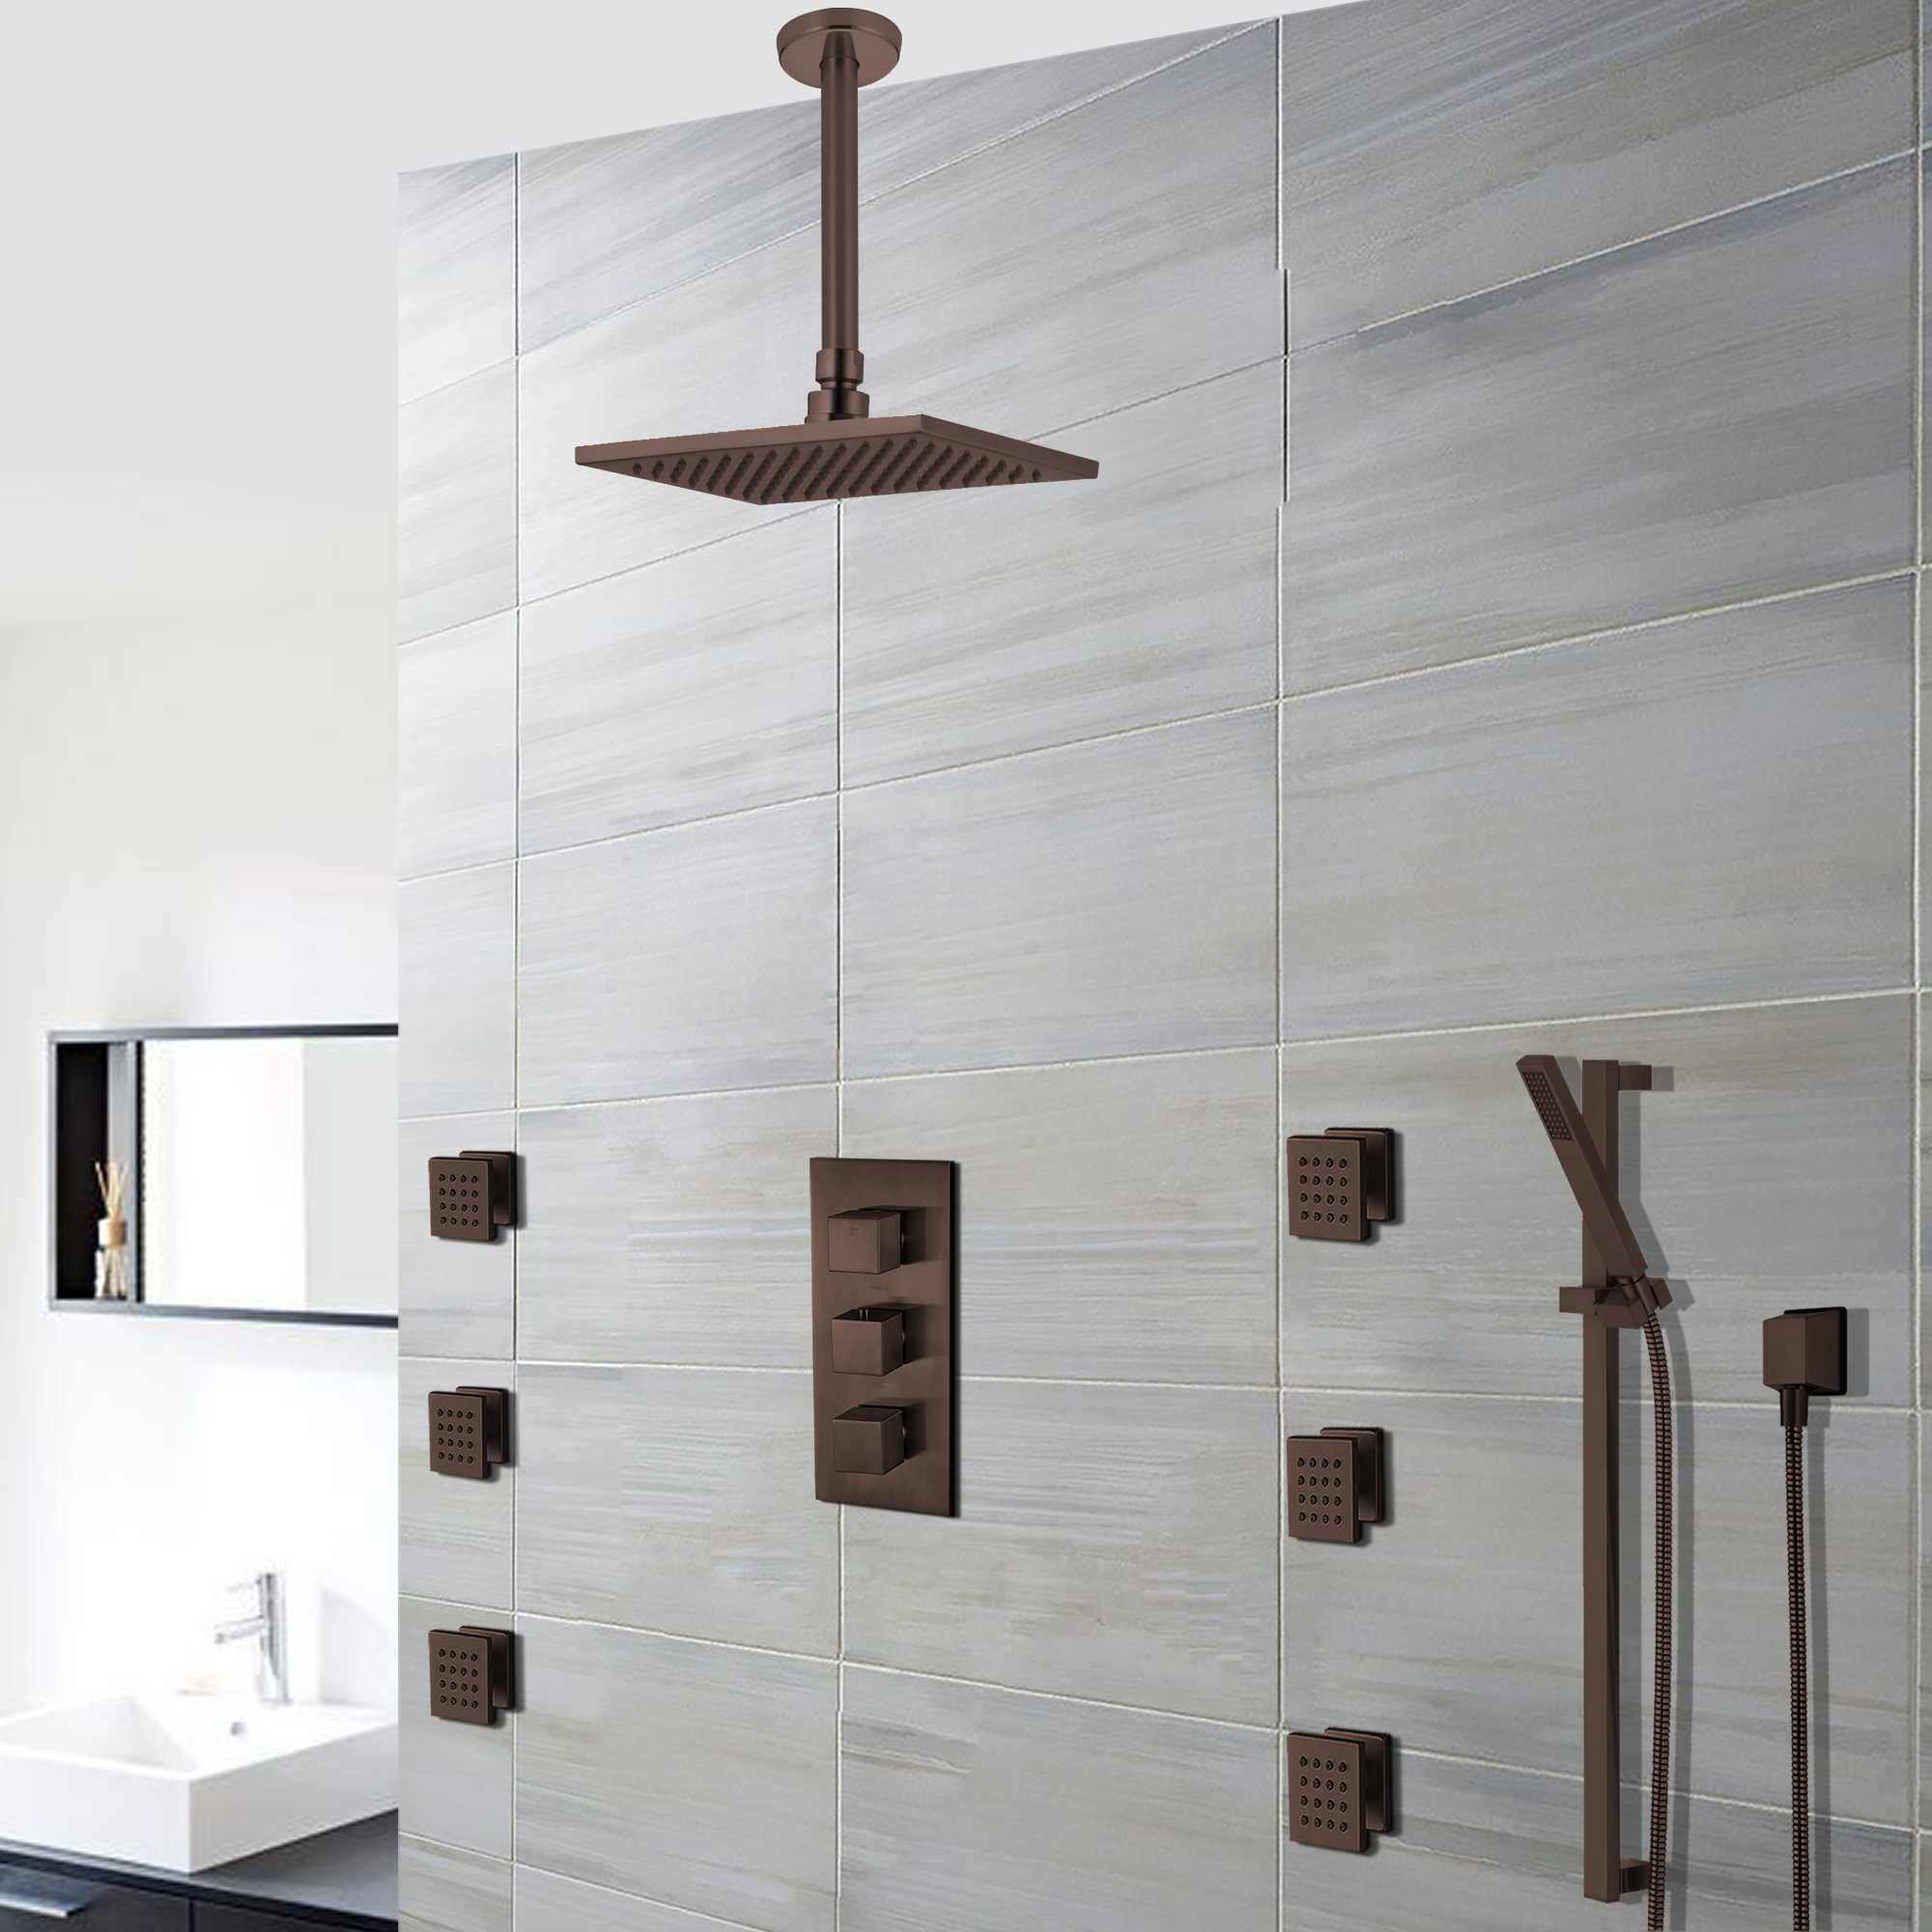 Soma Oil Rubbed Bronze Finish Thermostatic Shower Set Rain Head Multifunction Handset 6 Jets